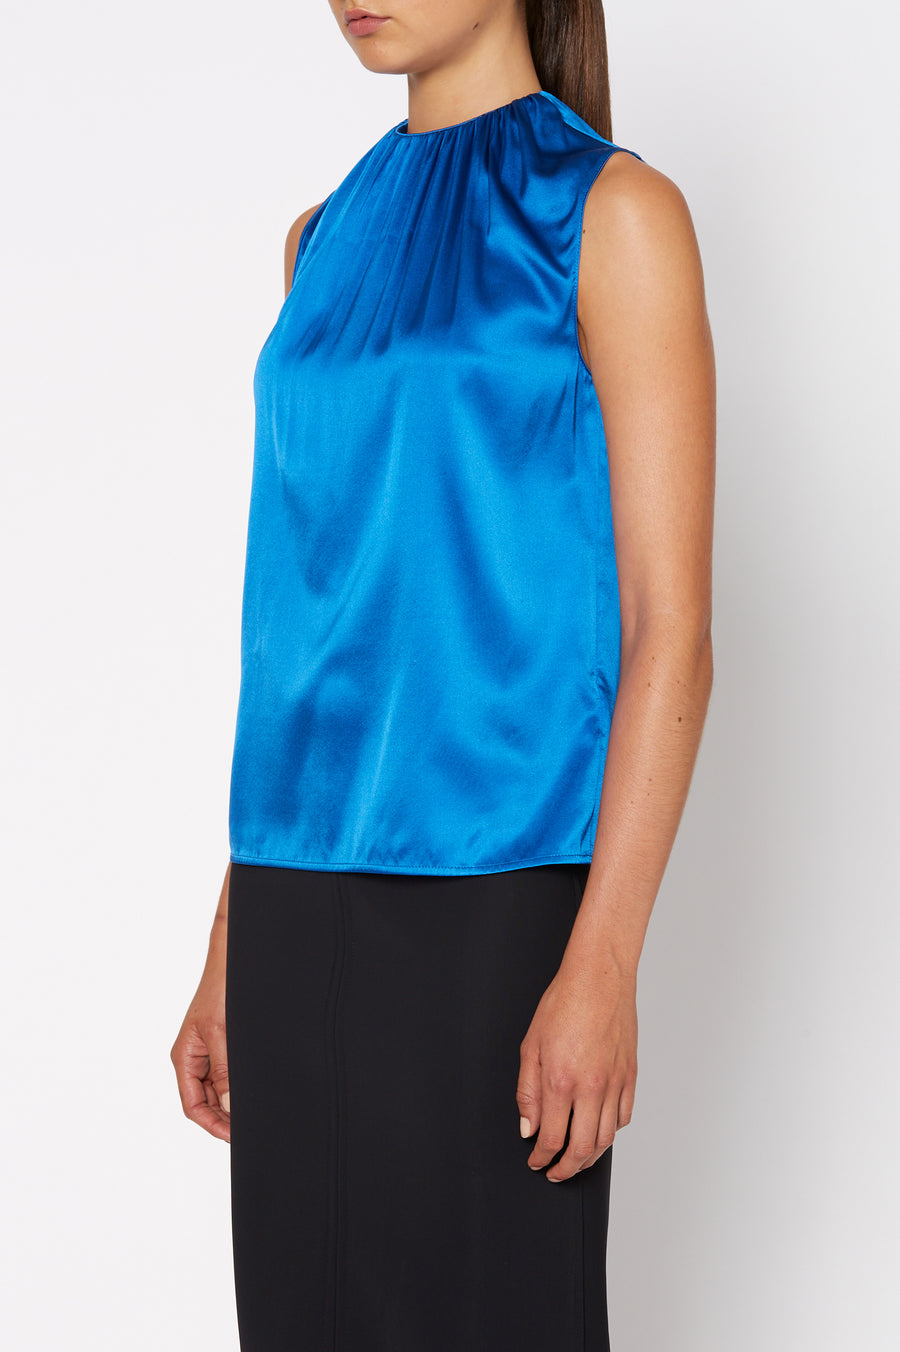 Silk Satin Tank, cut on the bias, soft drape with a slightly loose silhouette, High Neck, Color Peacock